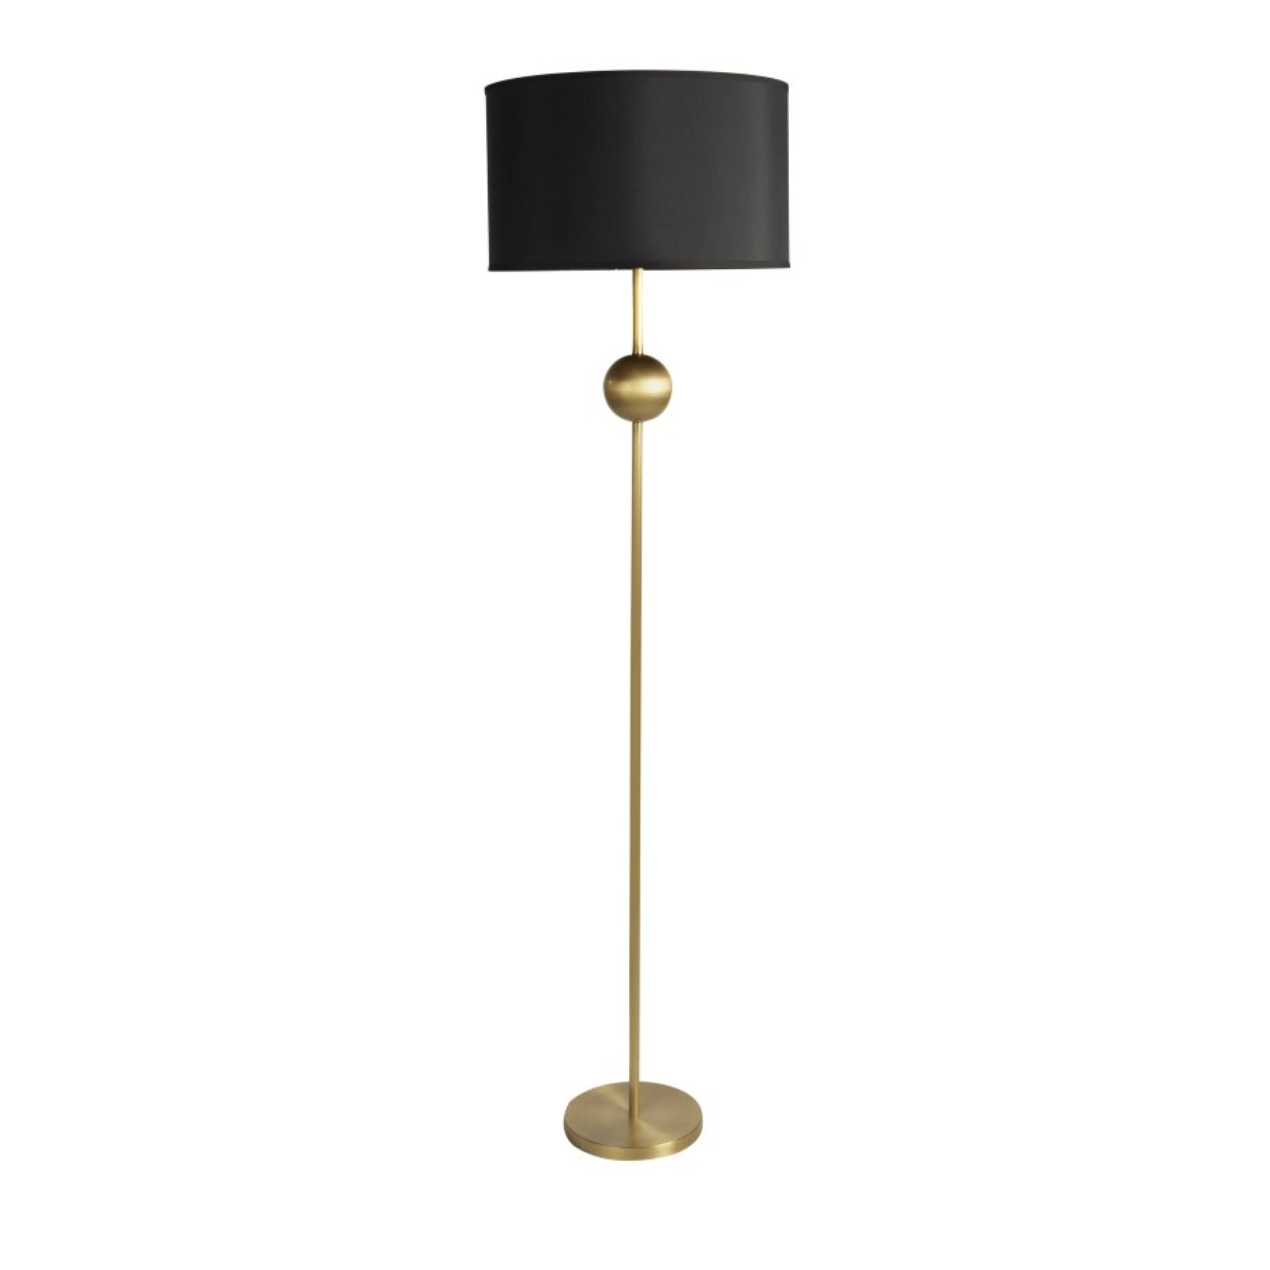 Sphere Brass Floor Lamp lighting shops lighting stores LED lights  lighting designer